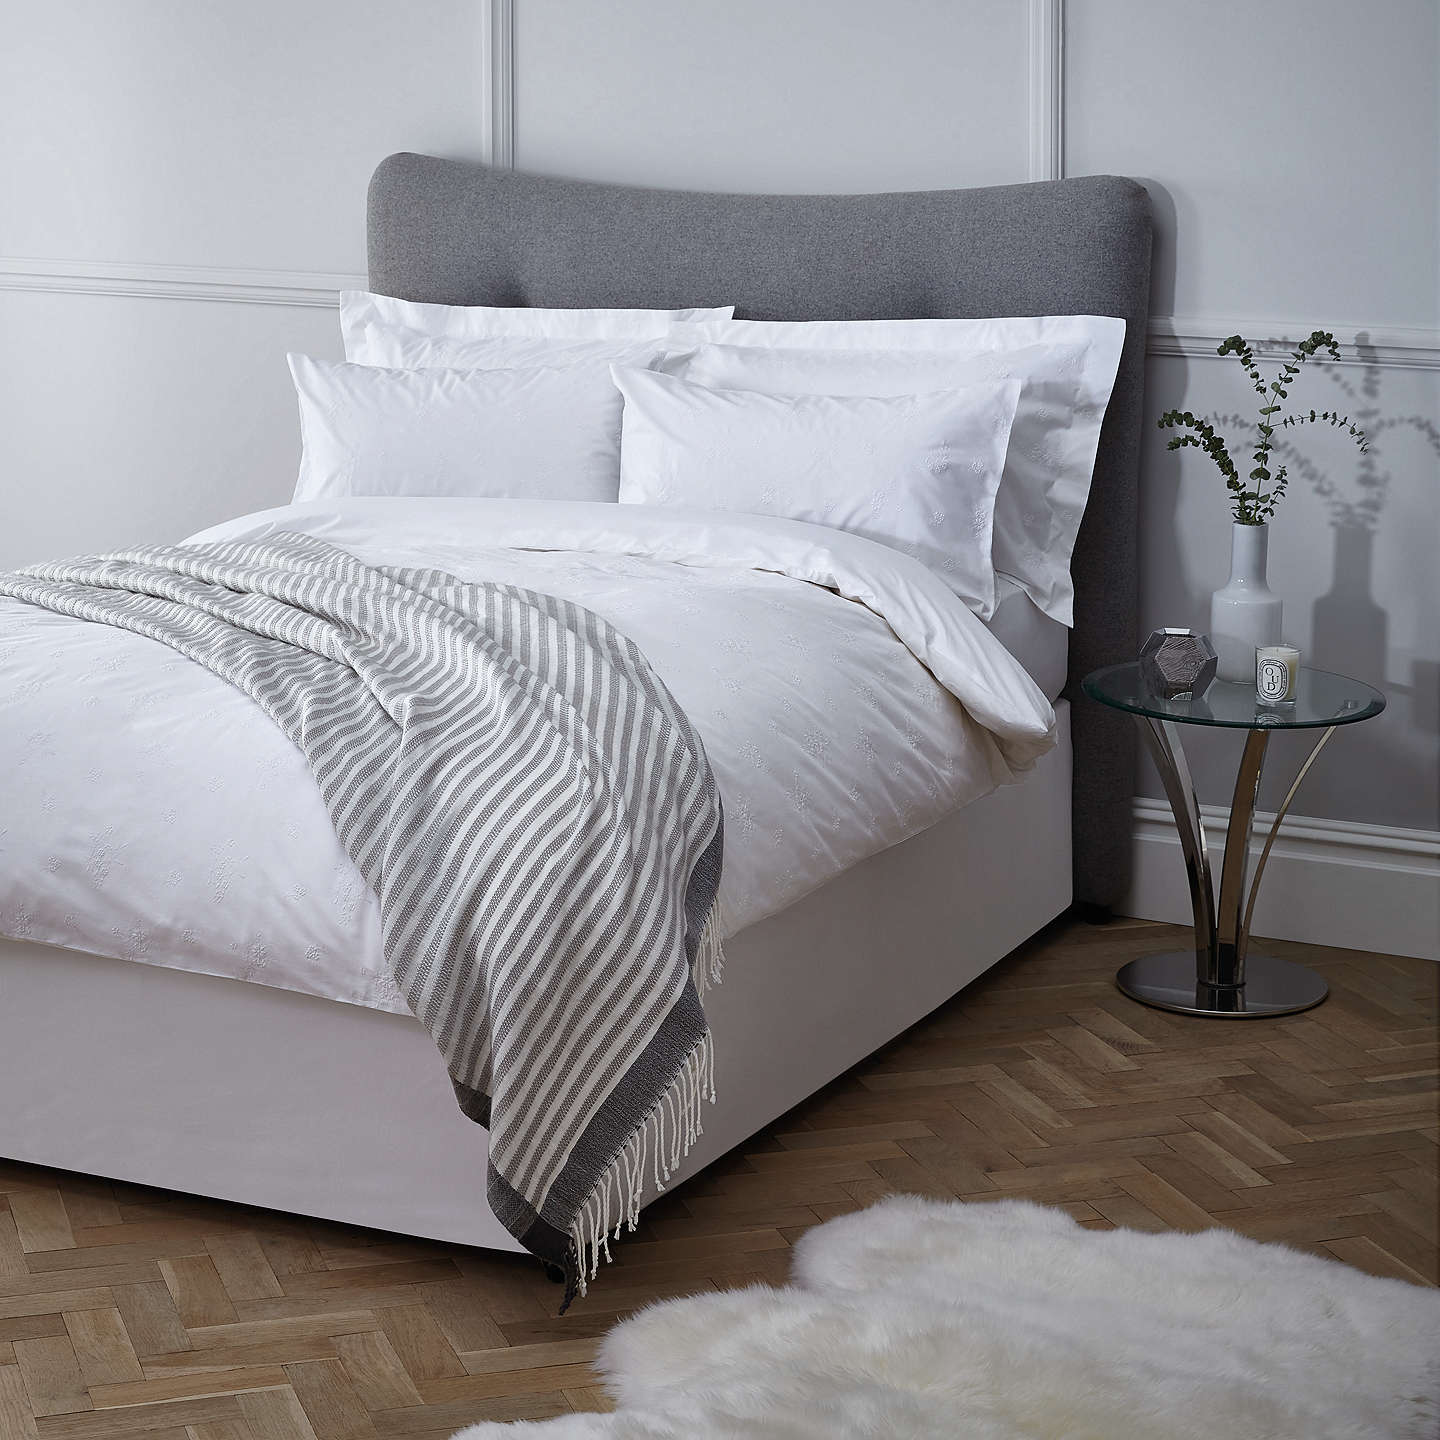 john lewis lillian floral cotton bedding at john lewis. Black Bedroom Furniture Sets. Home Design Ideas